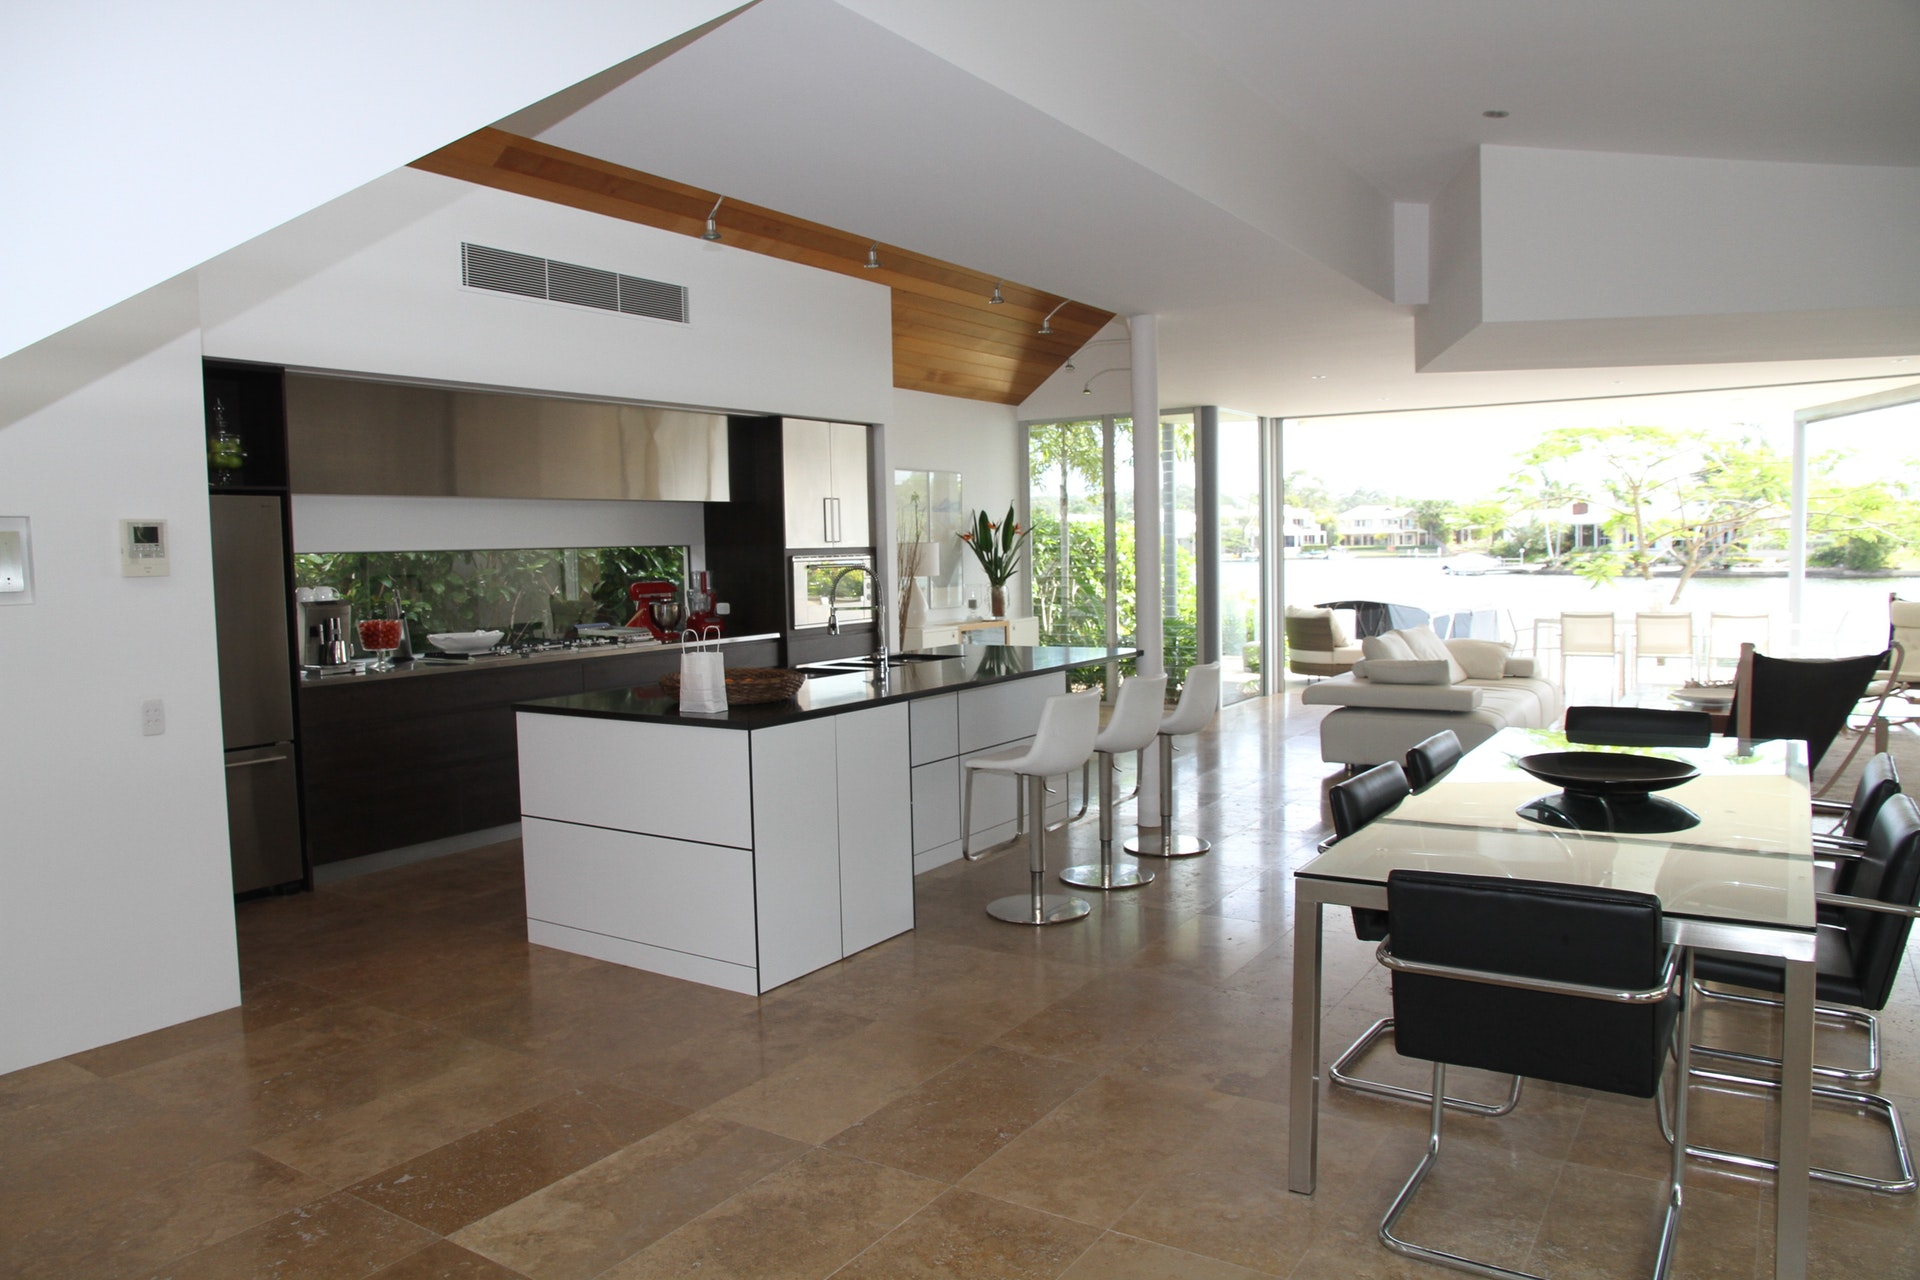 House & kitchen extensions in Poole, Bournemouth and Dorset